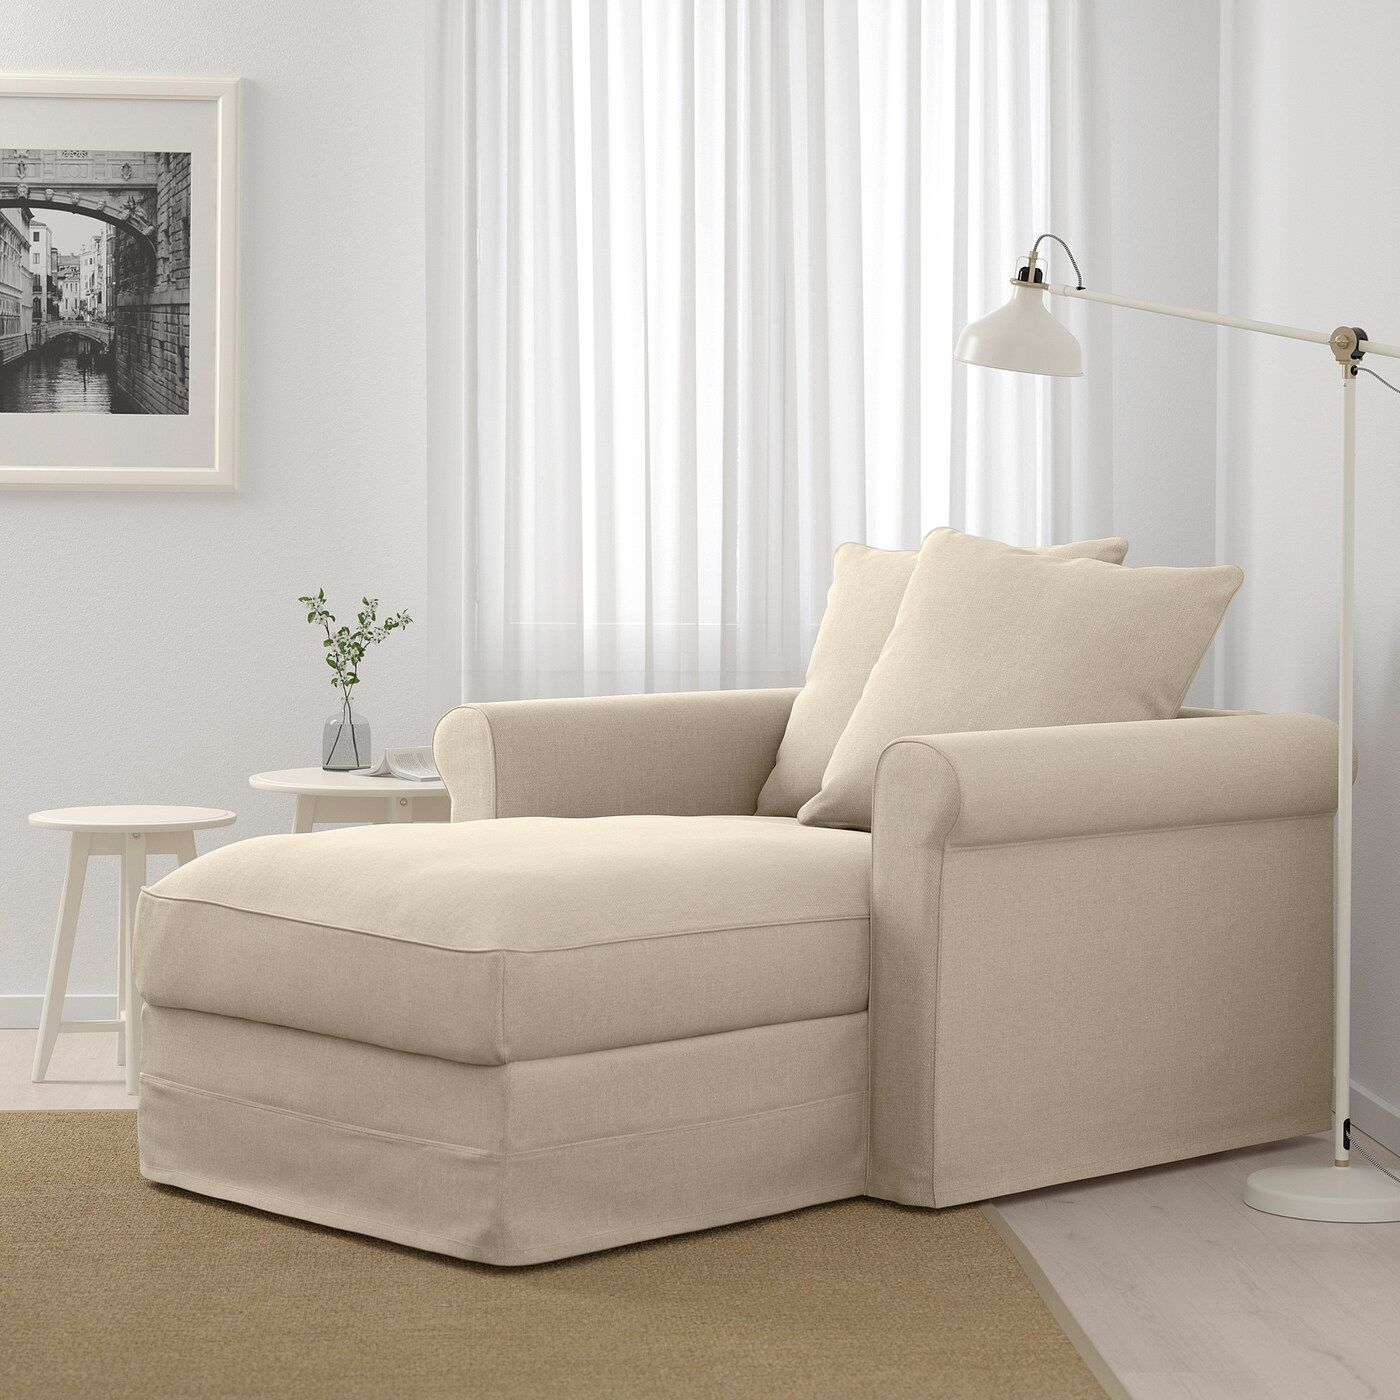 Inexpensive Cottage Style Living Room Furniture From Ikea: IKEA - GRÖNLID Chaise Sporda Natural In 2020